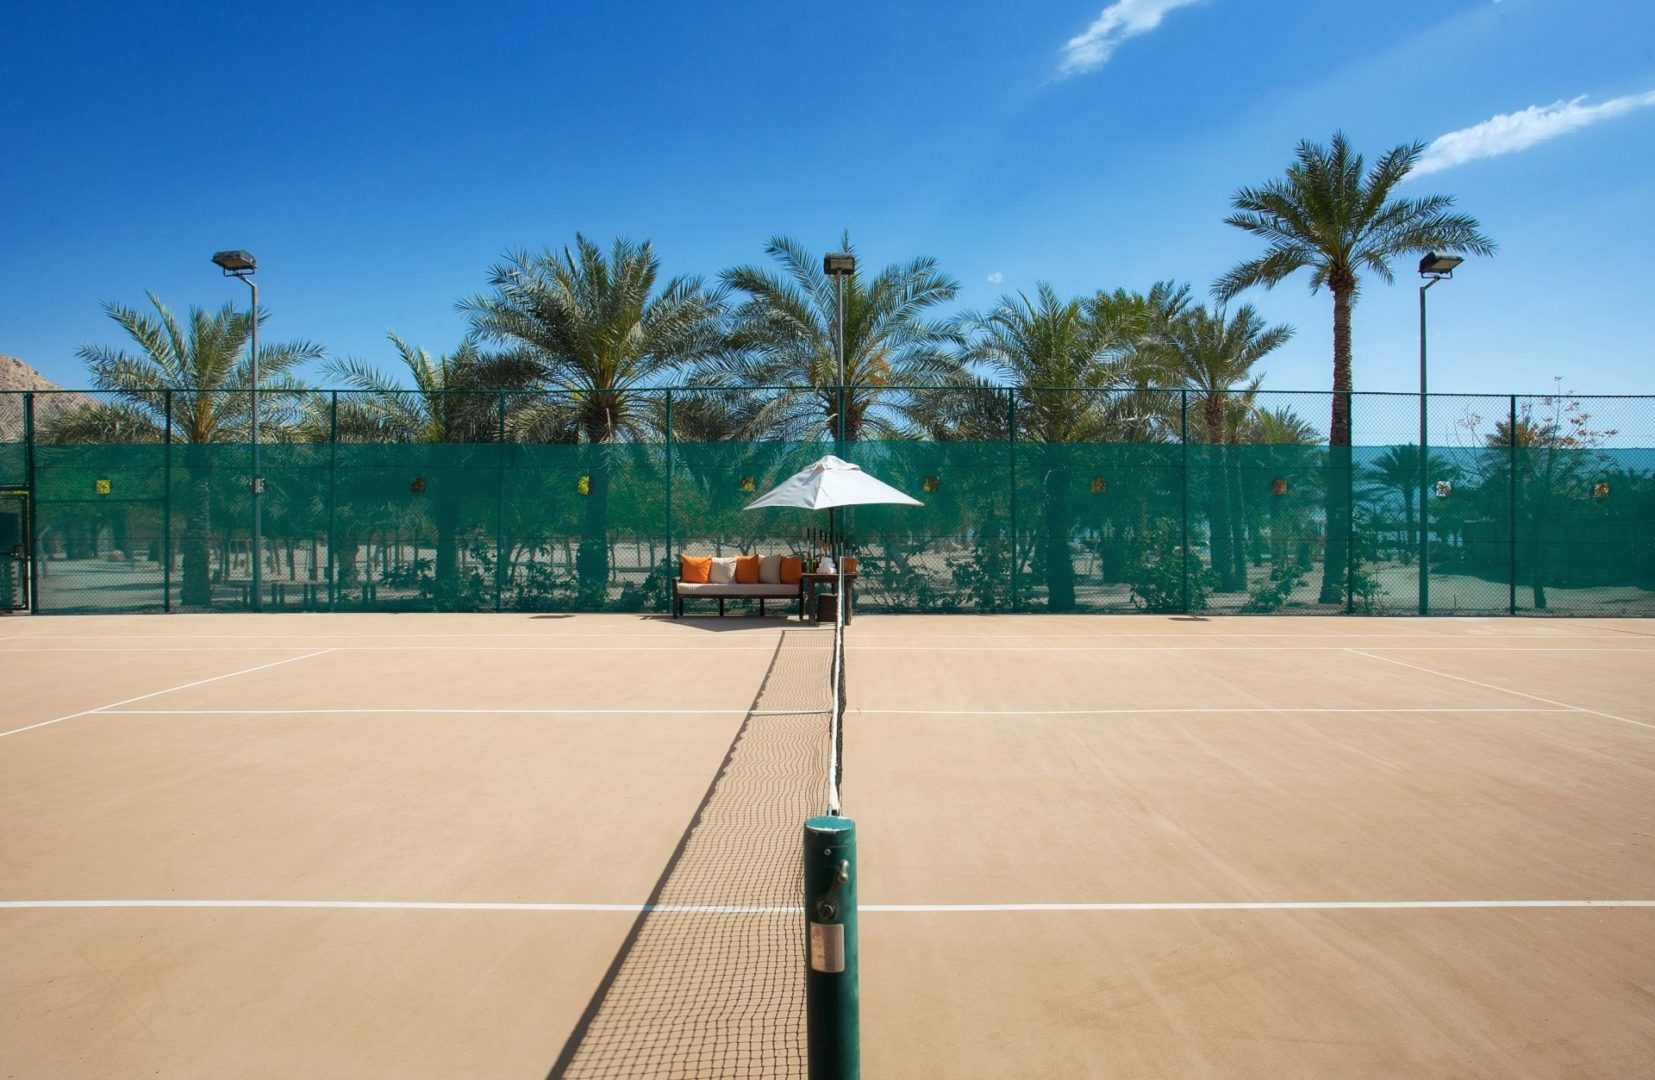 Tennis is one of many activities available